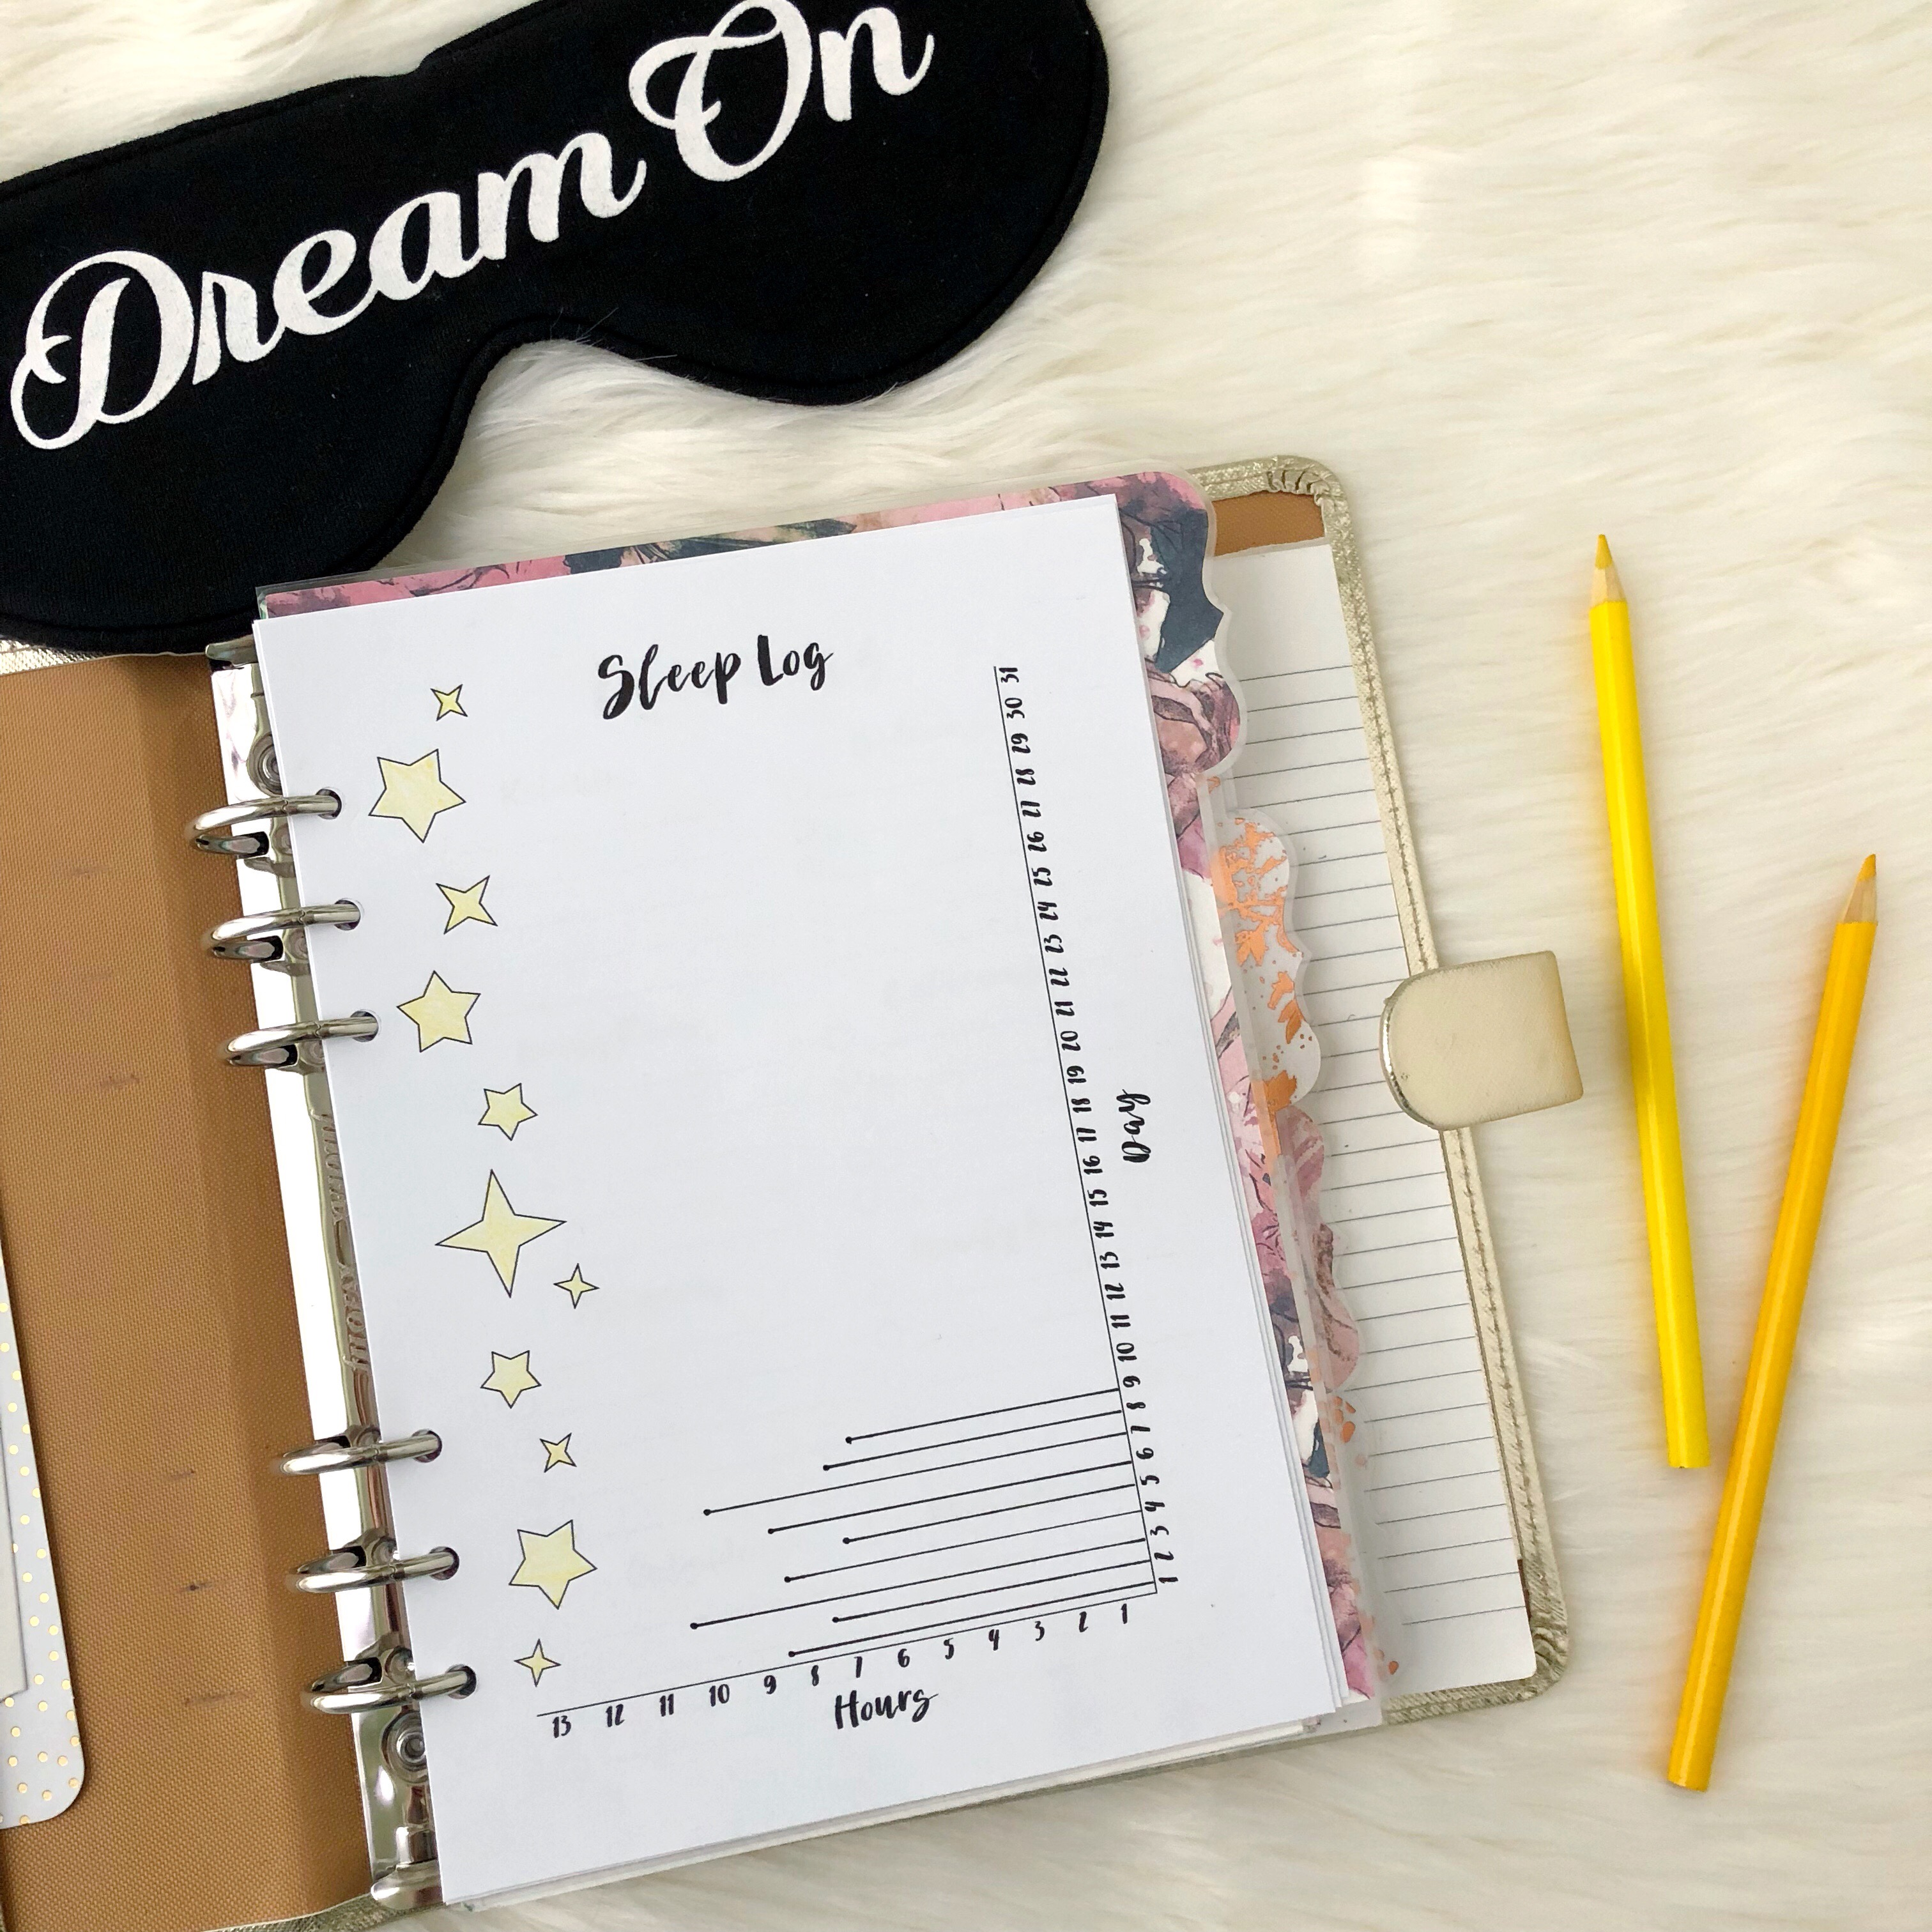 photo about A5 Planner Printable called Snooze Log Increase: Cost-free A5 Planner Printable - Purple Bows